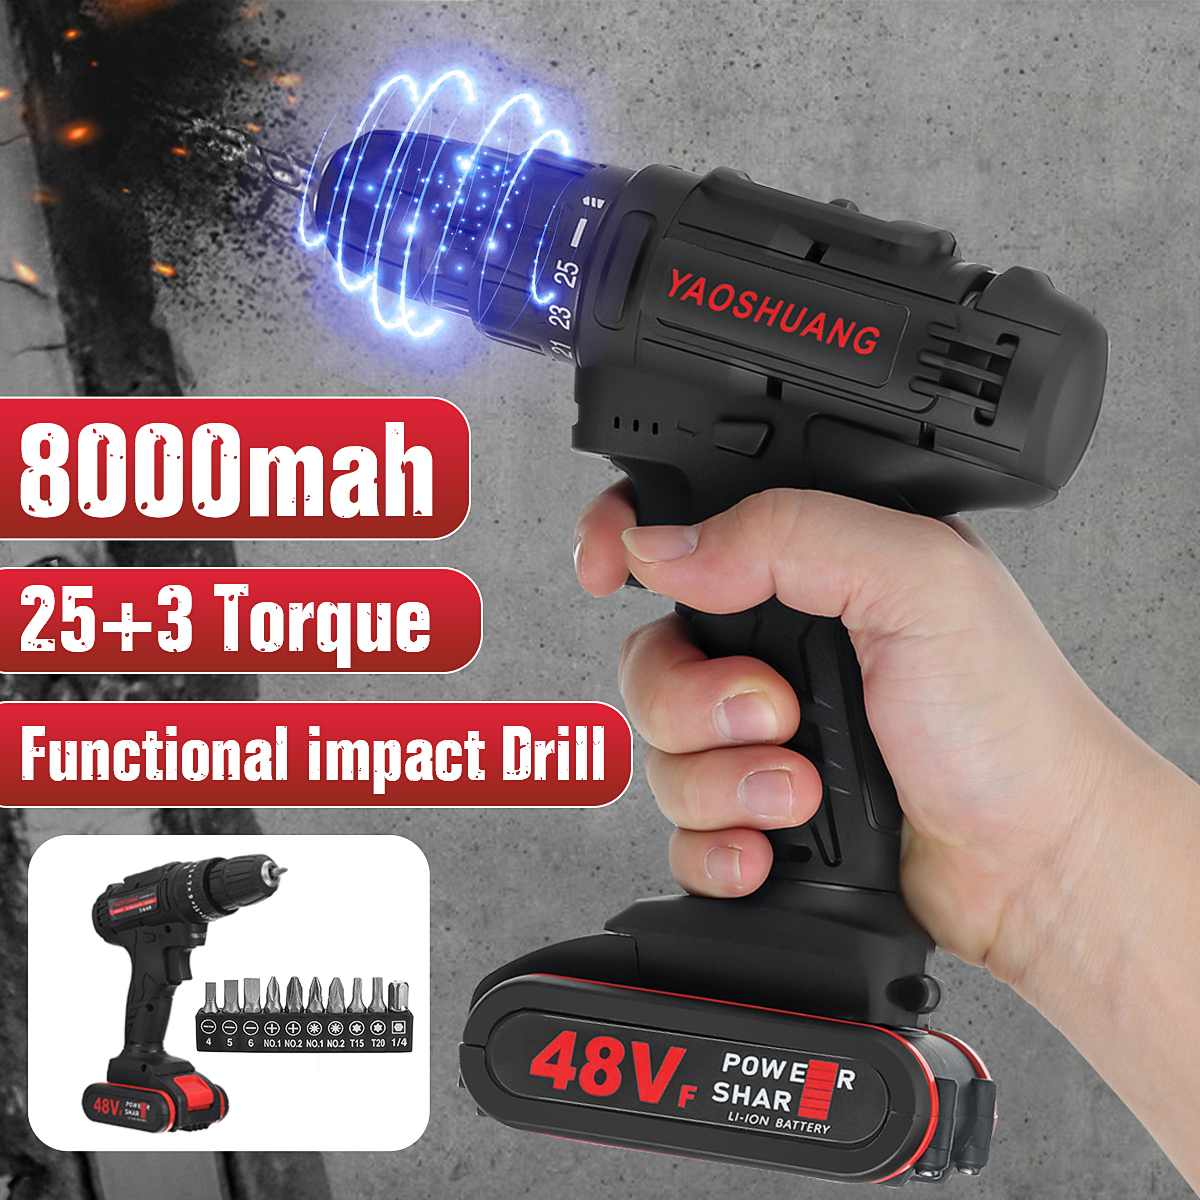 Electric Drill /Impact Drill 48V Cordless Combi Drill 2 Speed Rechargeable Functional Driver Battery Drill With 10Pcs Drill Bits